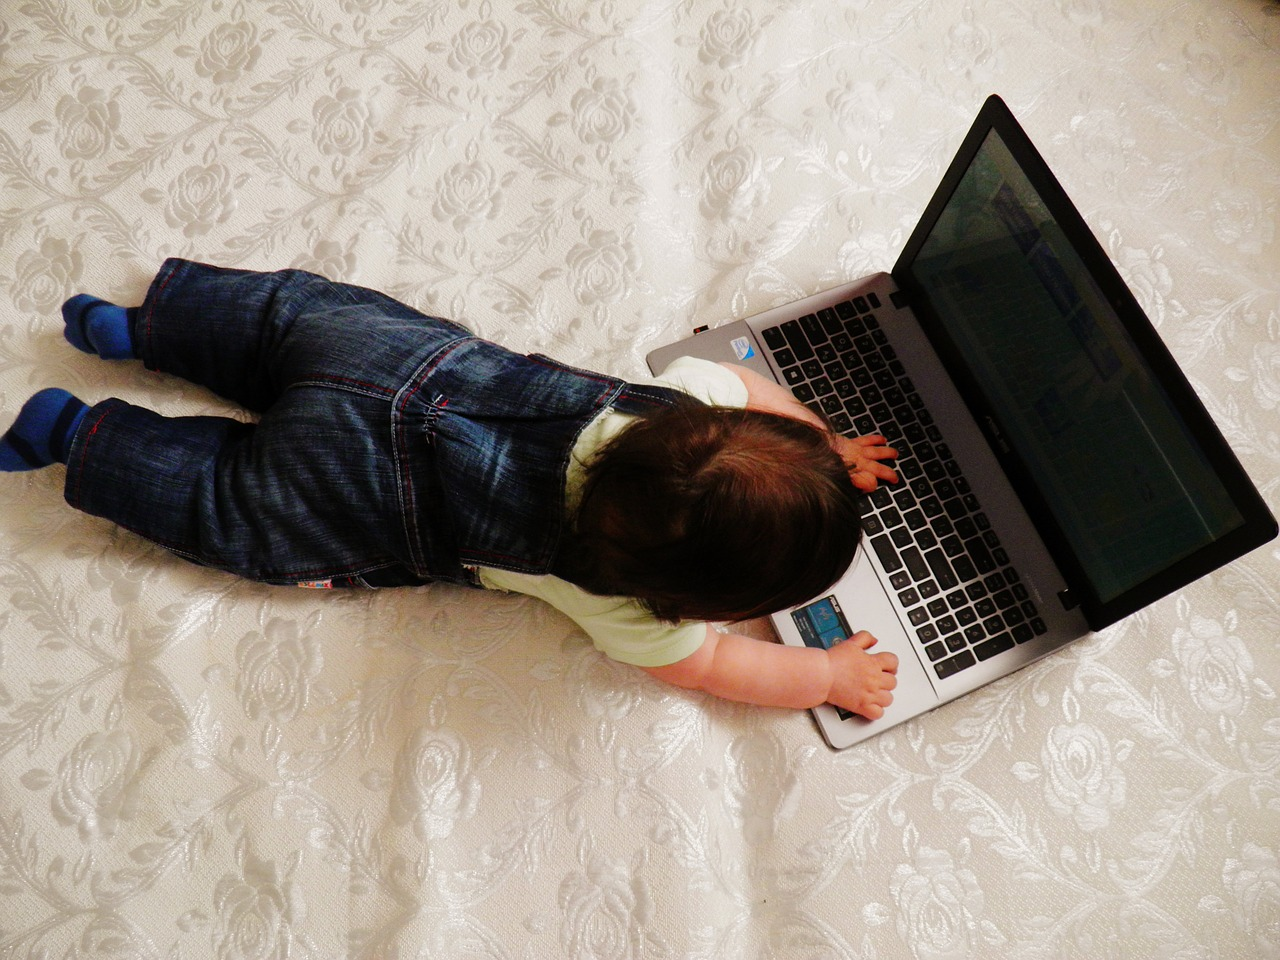 Photo of a baby lying on a bed with a laptop computer.